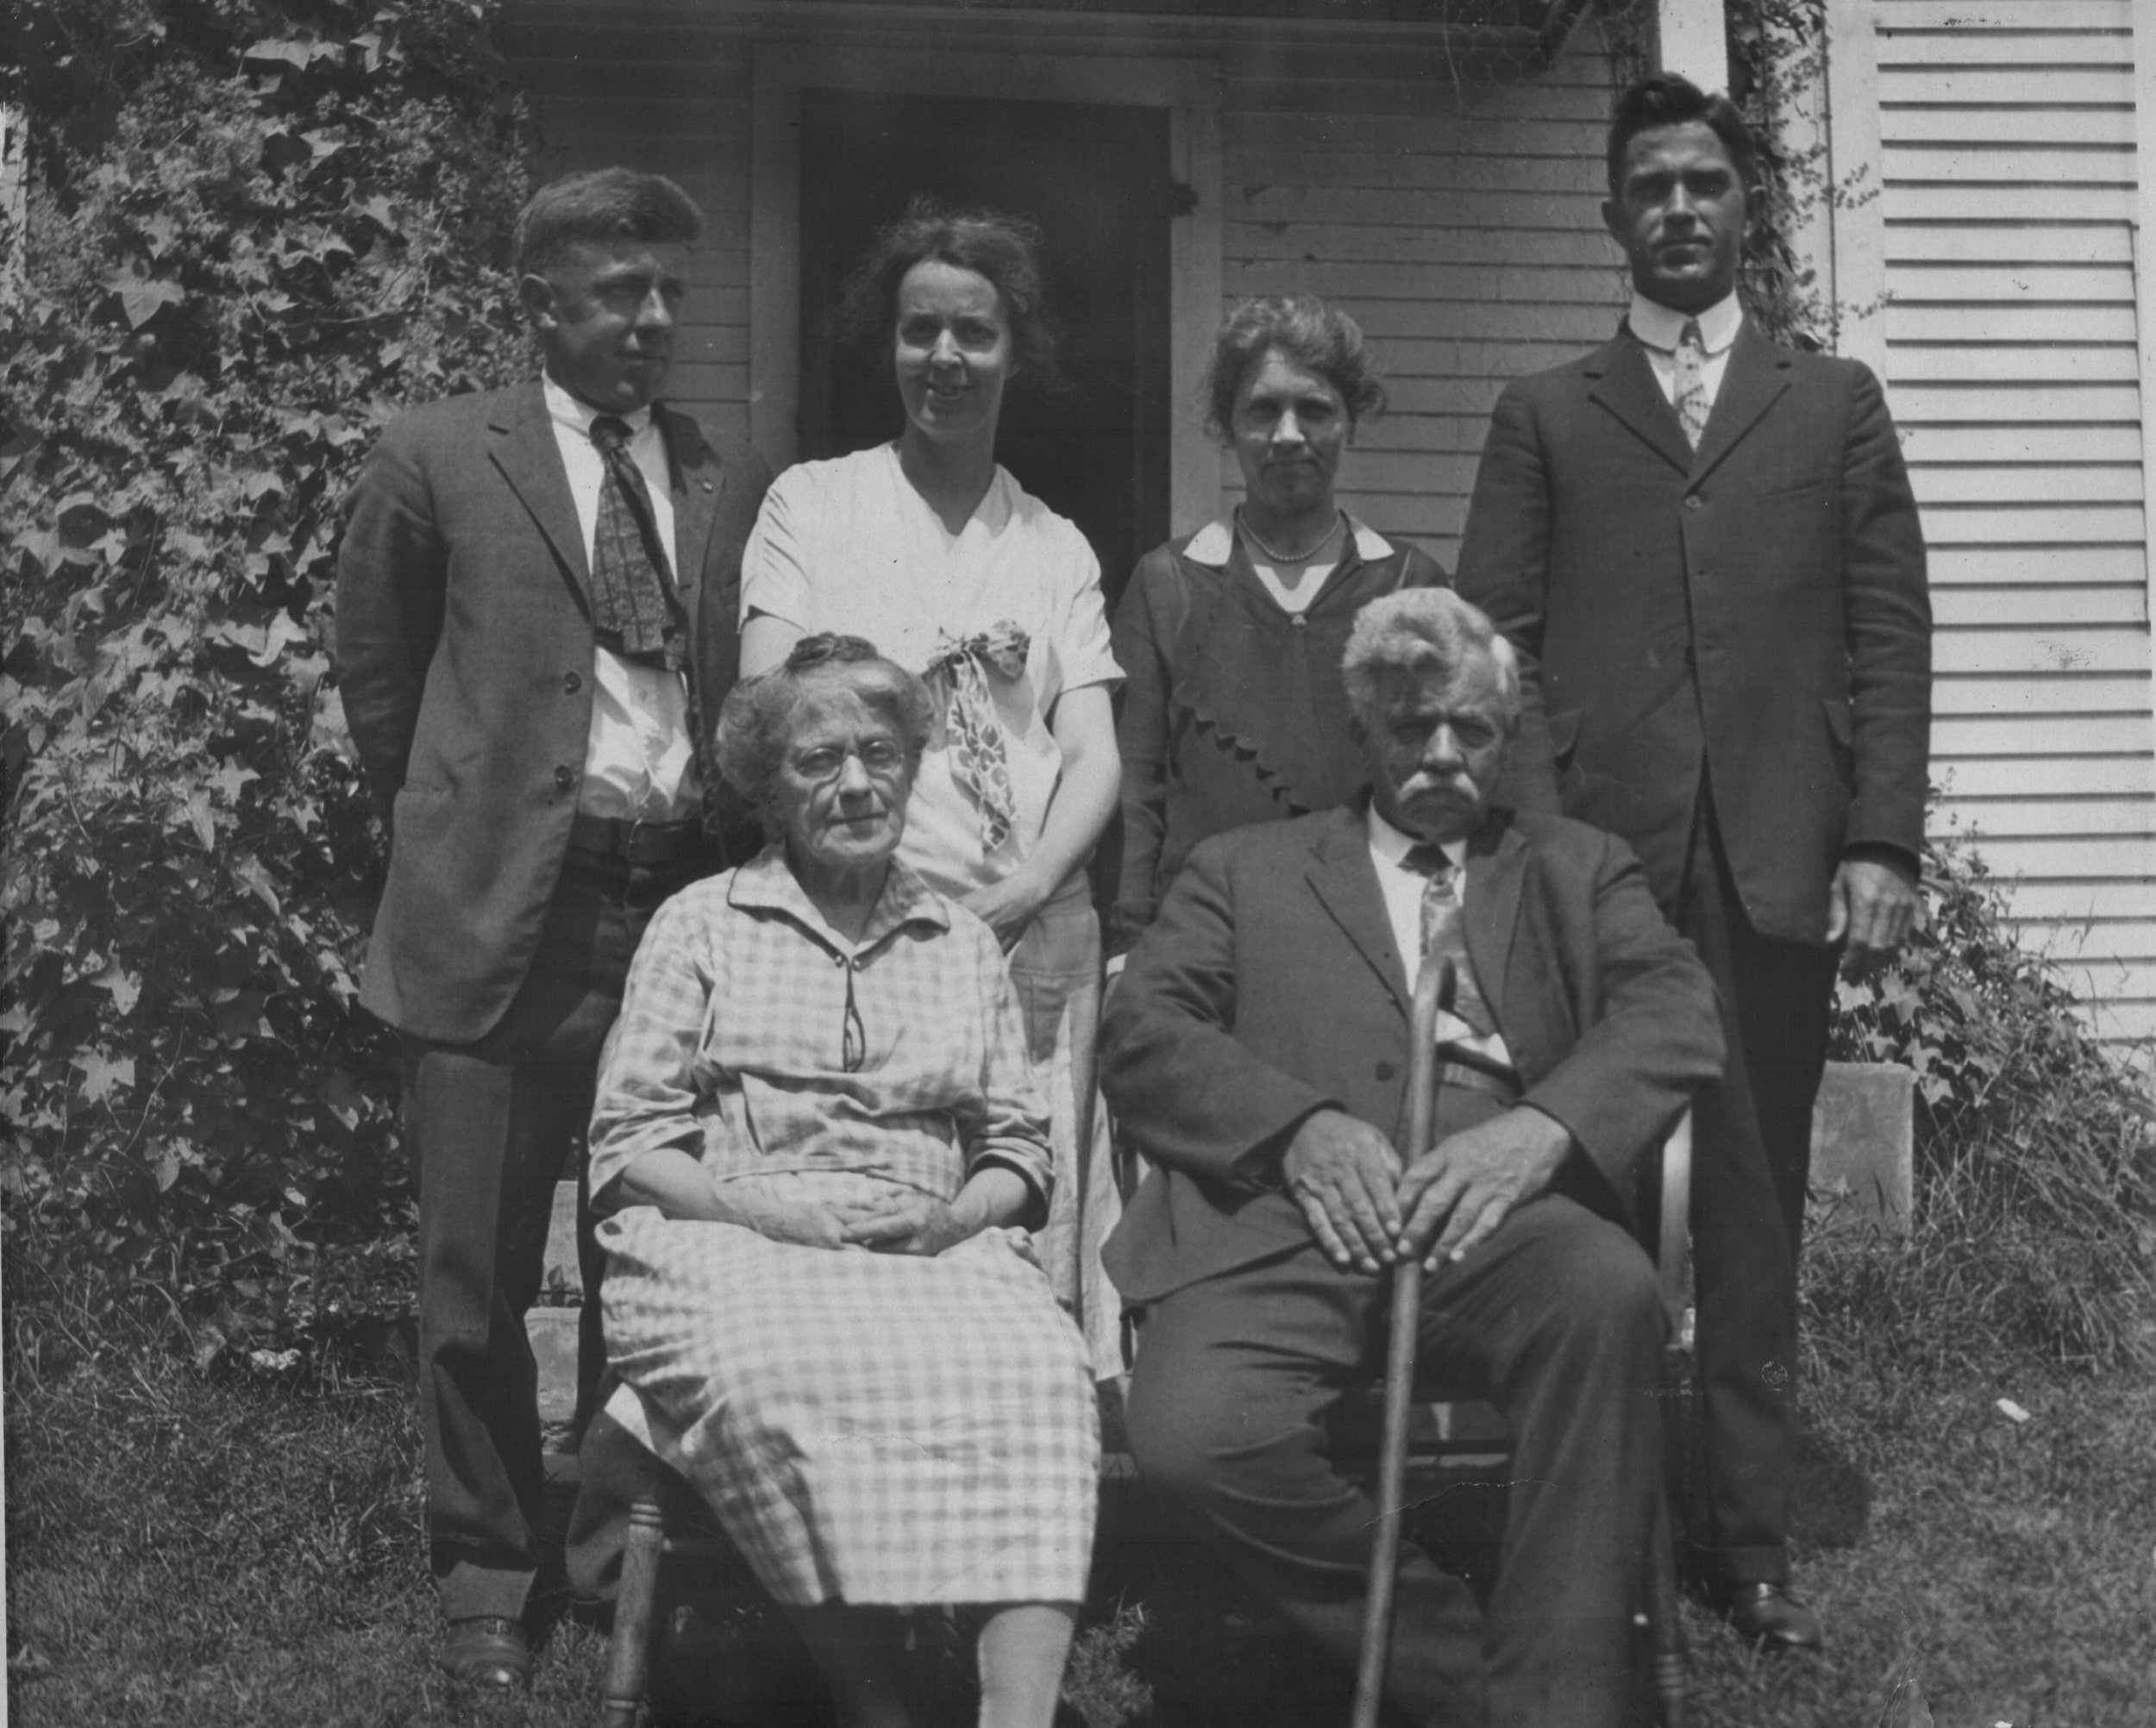 Front Row: Bertha and Herbert  - First Generation   Back Row: Winthrop, Ruth, Kathrine and Raymond  - Second Generation   Photo taken around 1930